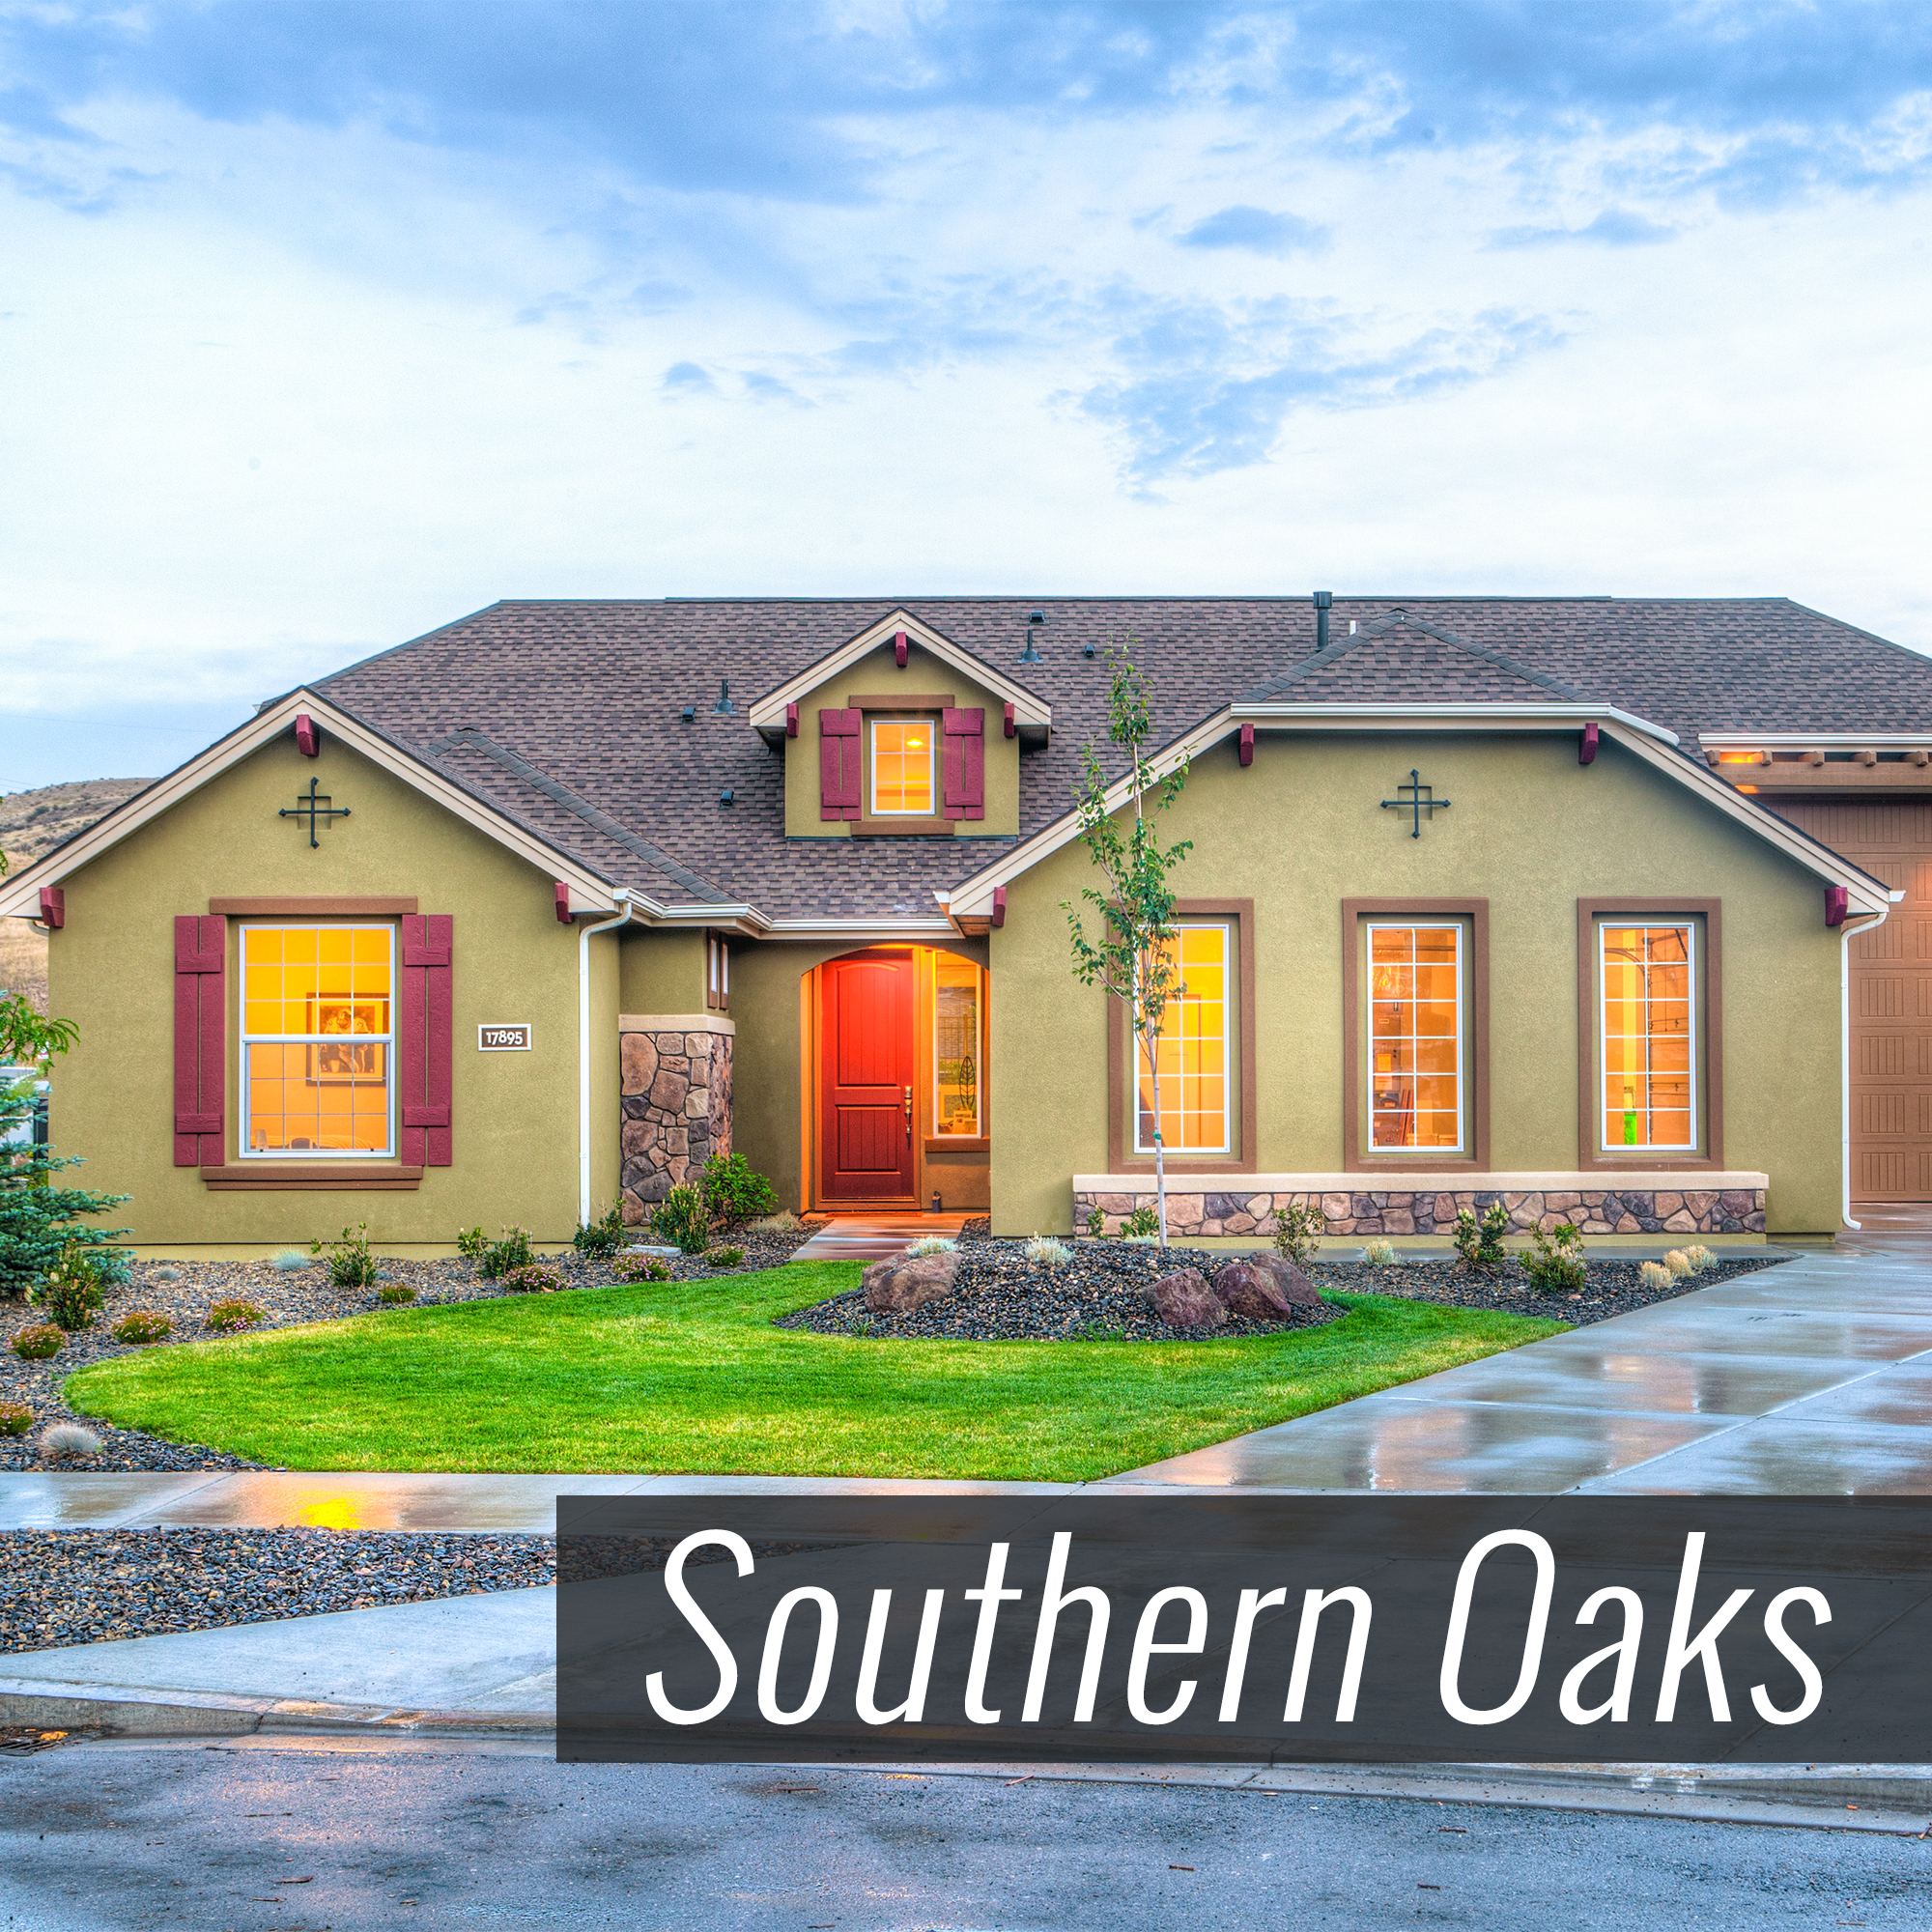 Homes for Sale in Southern Oaks Subdivision